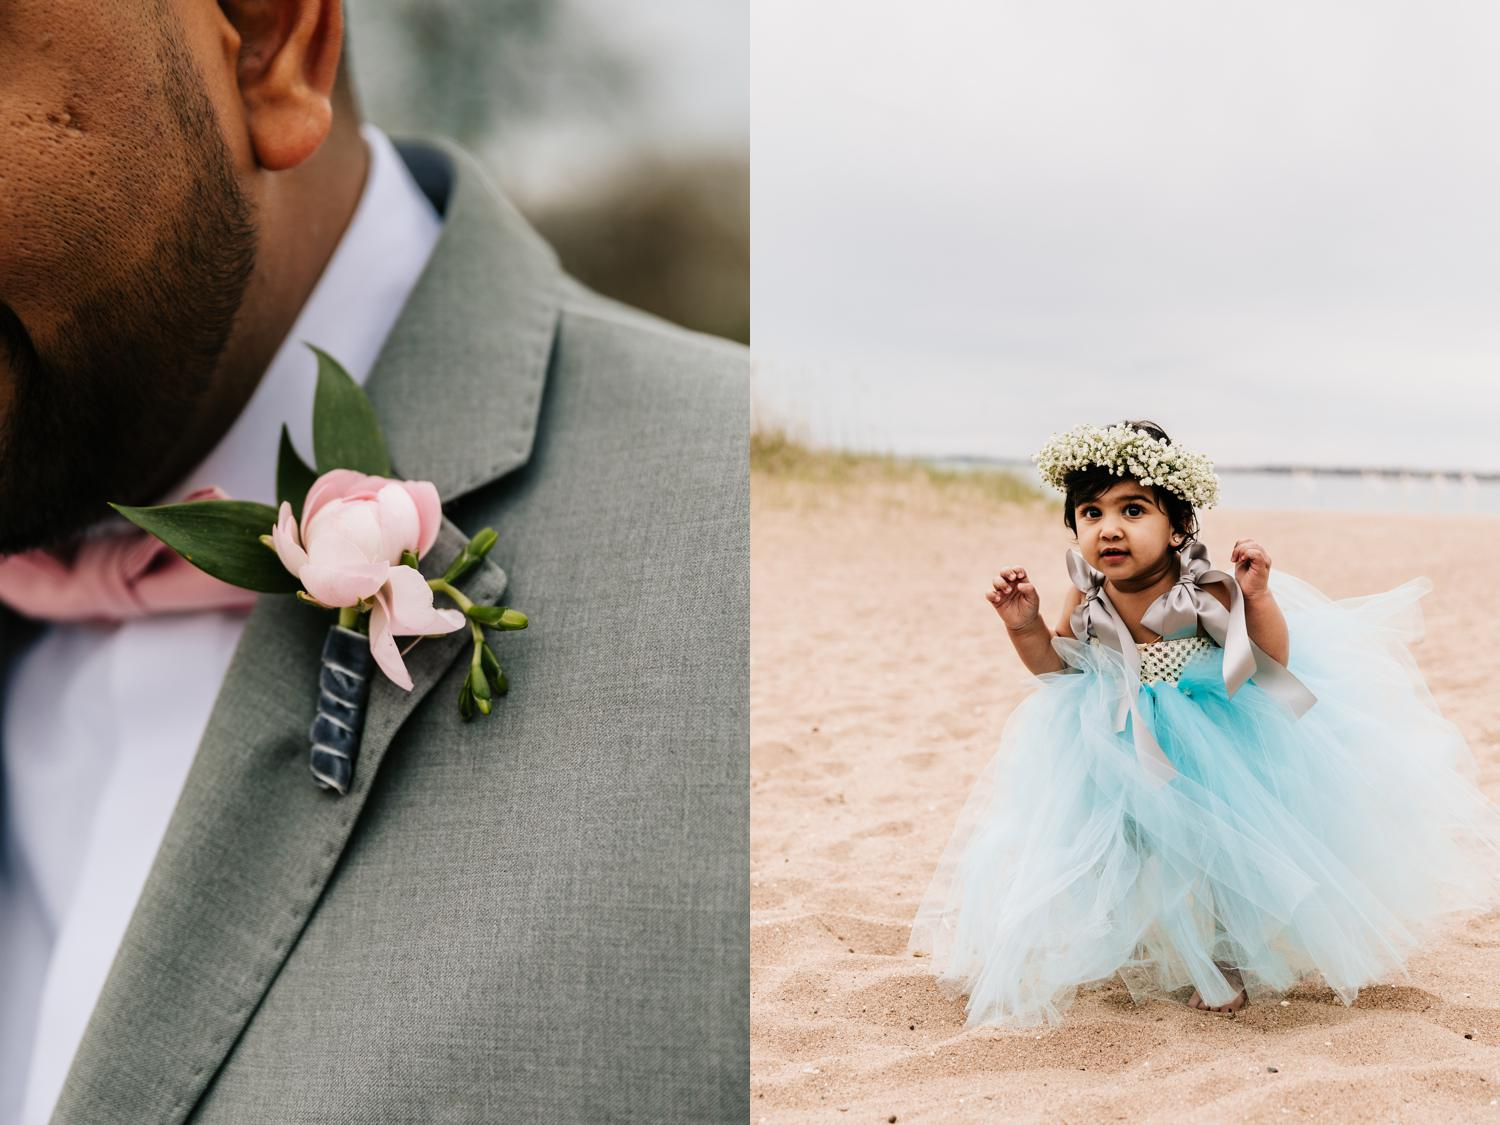 Blue flower girl dress for intimate beach wedding